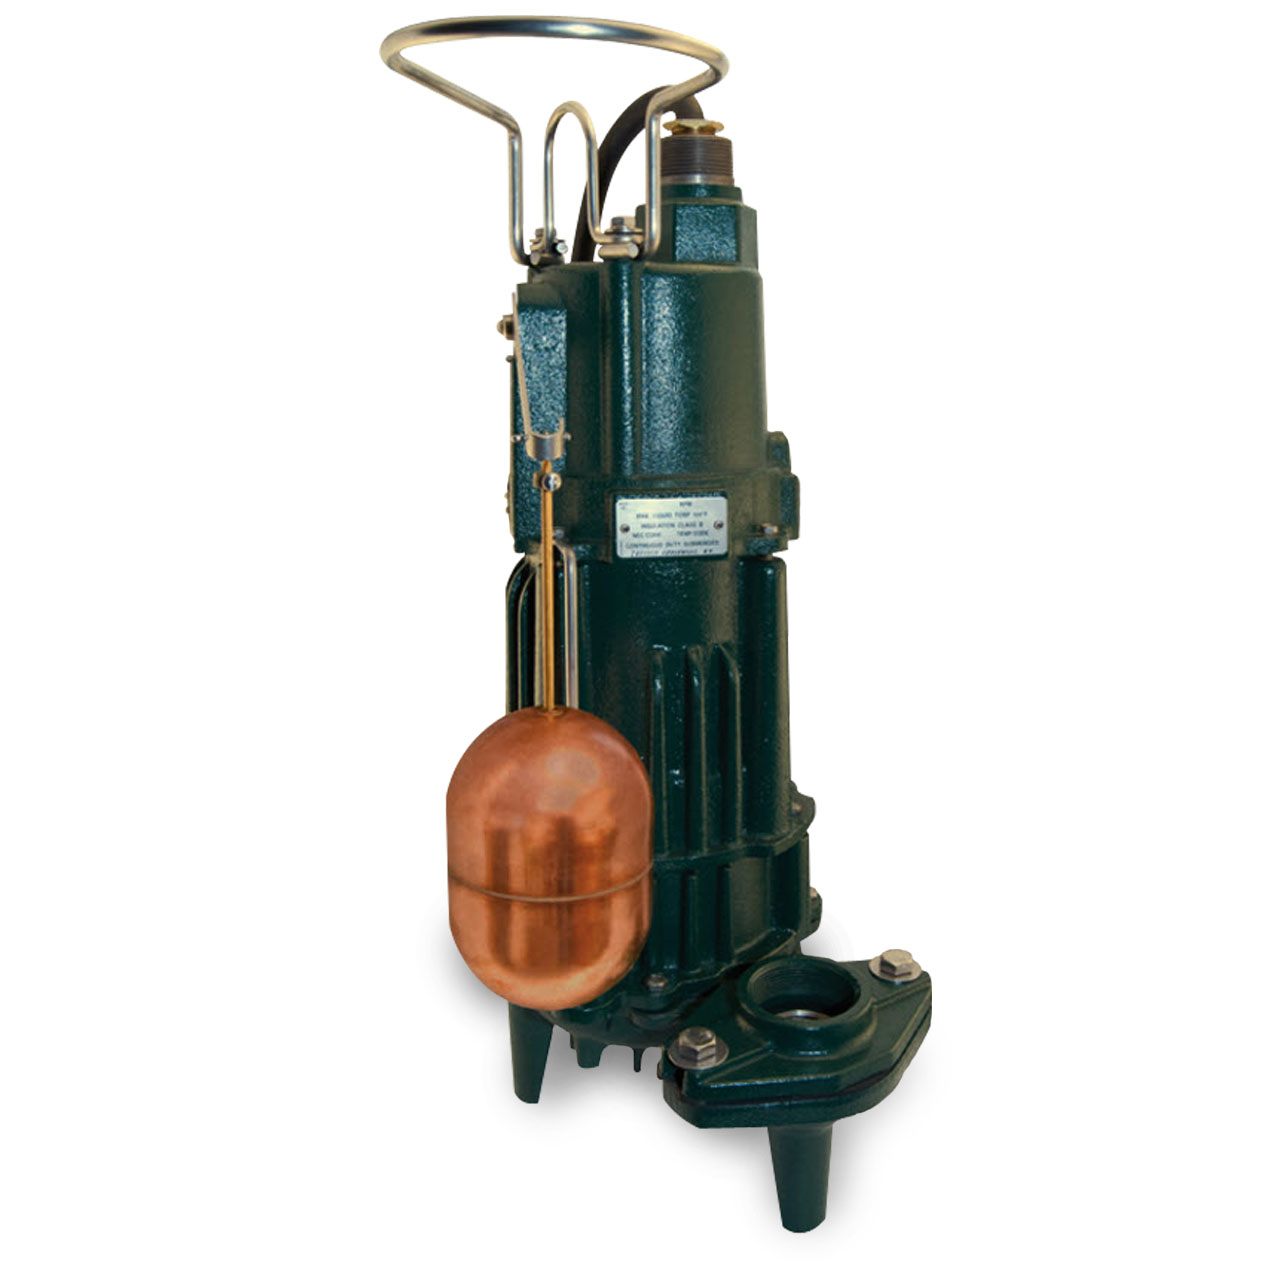 x160_w zoeller zoeller 295 0070 model dx295 explosion proof pump 2 0 hp zoeller pump wiring diagram at bayanpartner.co